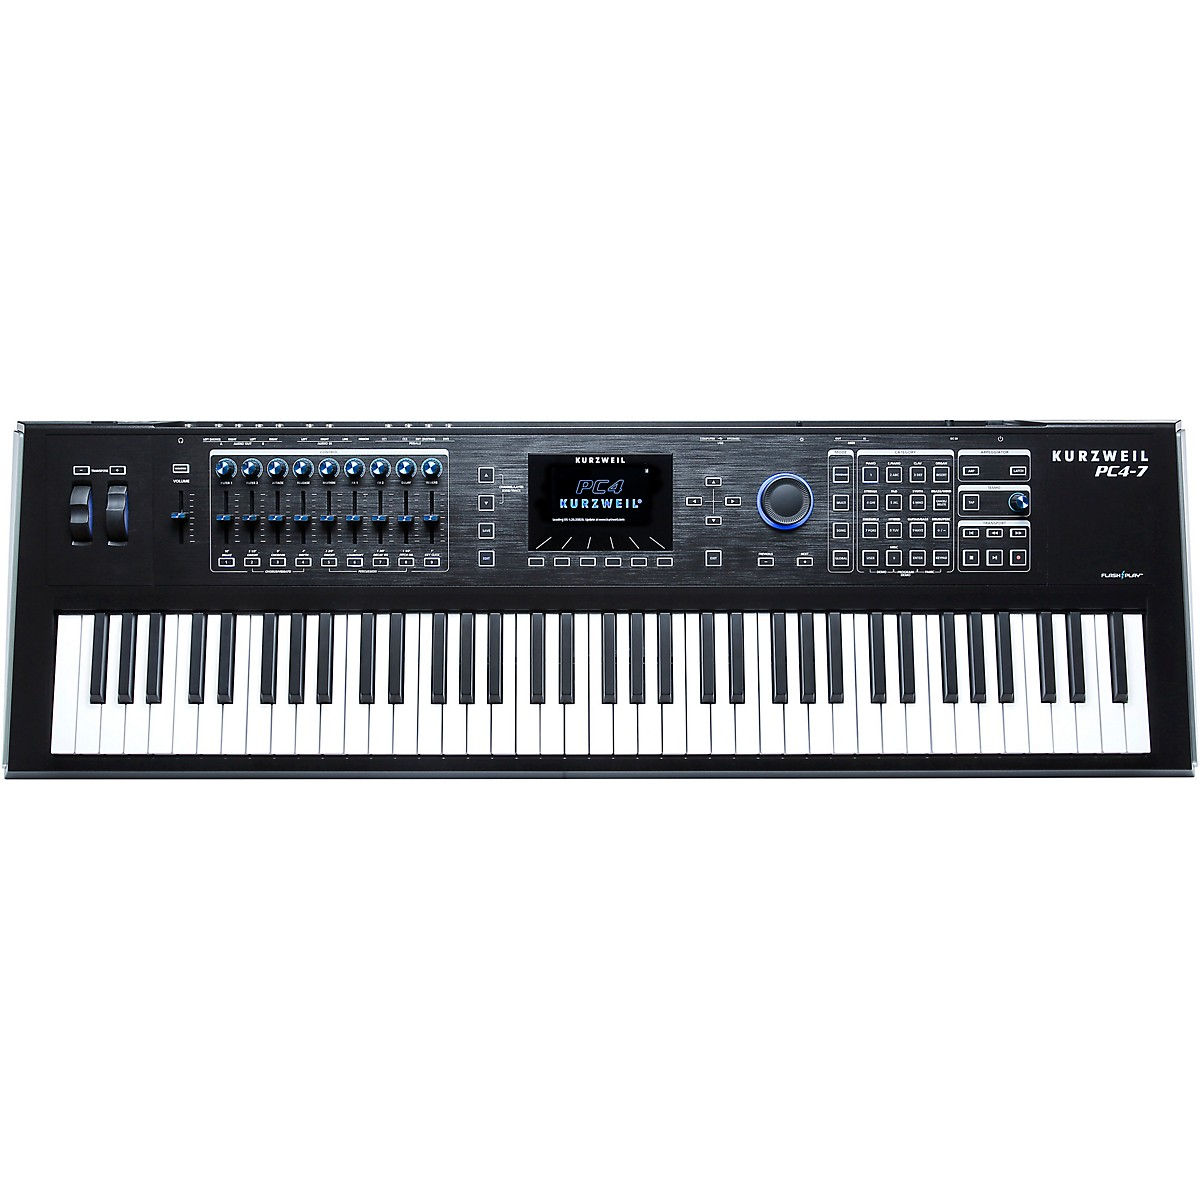 Kurzweil PC4-7 76-Key Performance Controller